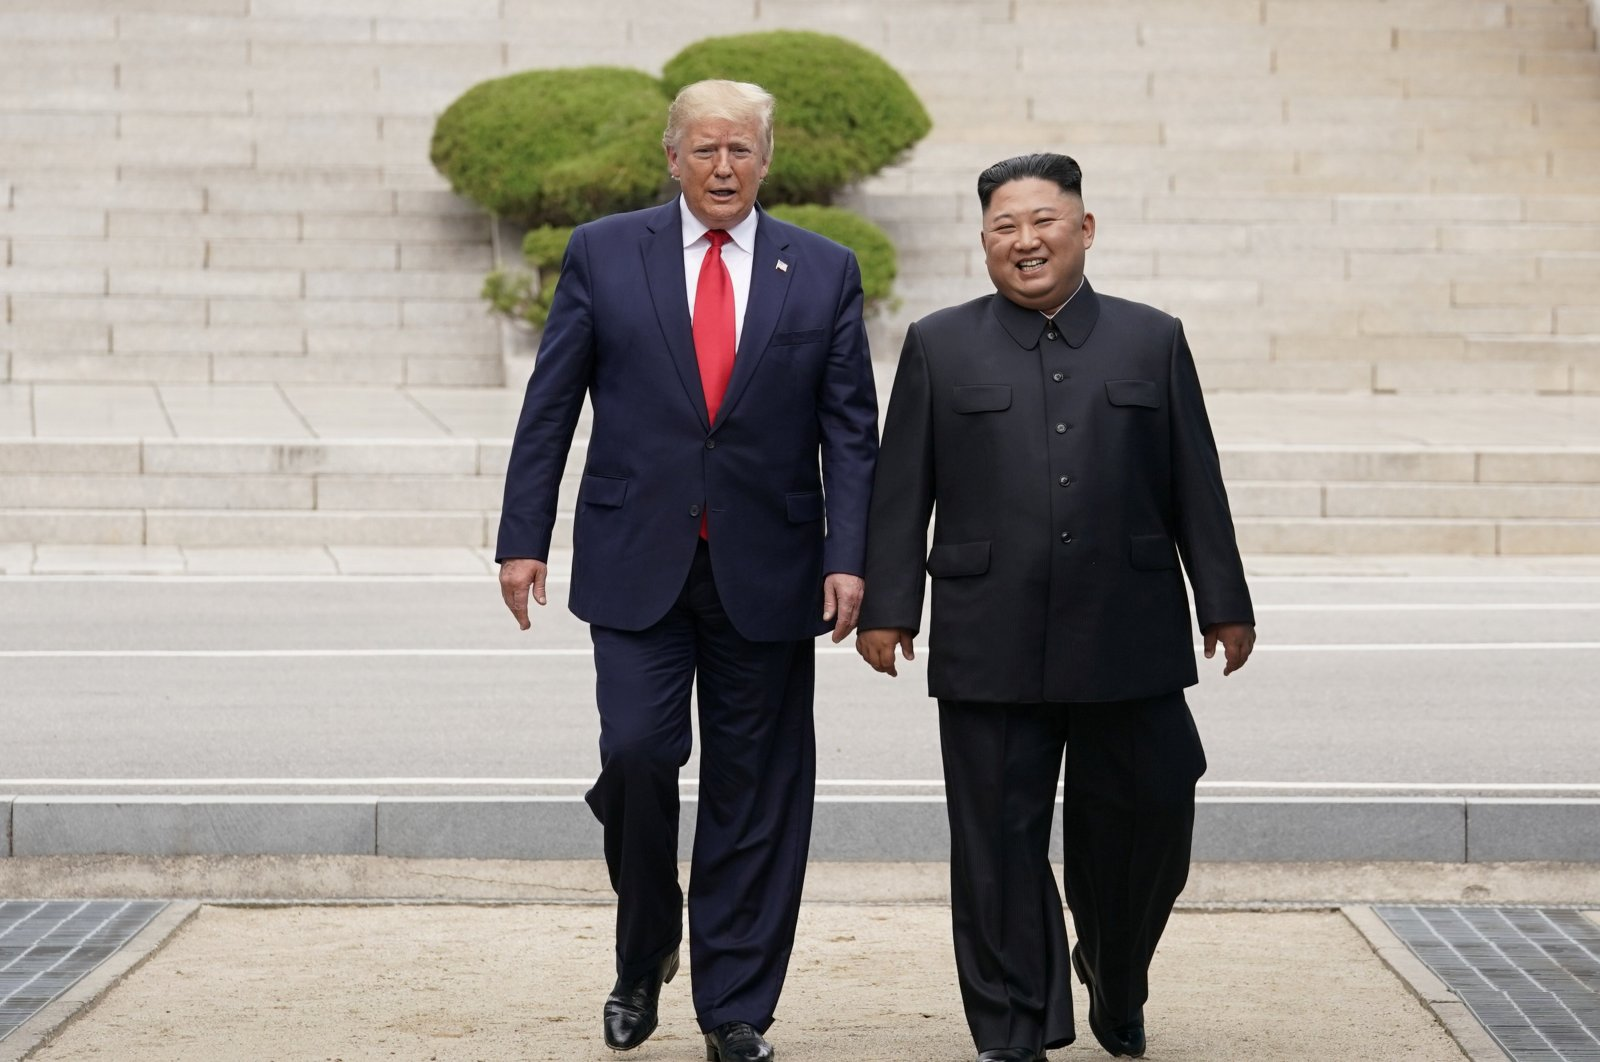 U.S. President Donald Trump meets with North Korean leader Kim Jong Un at the demilitarized zone separating the two Koreas, in Panmunjom, South Korea, June 30, 2019. (Reuters Photo)